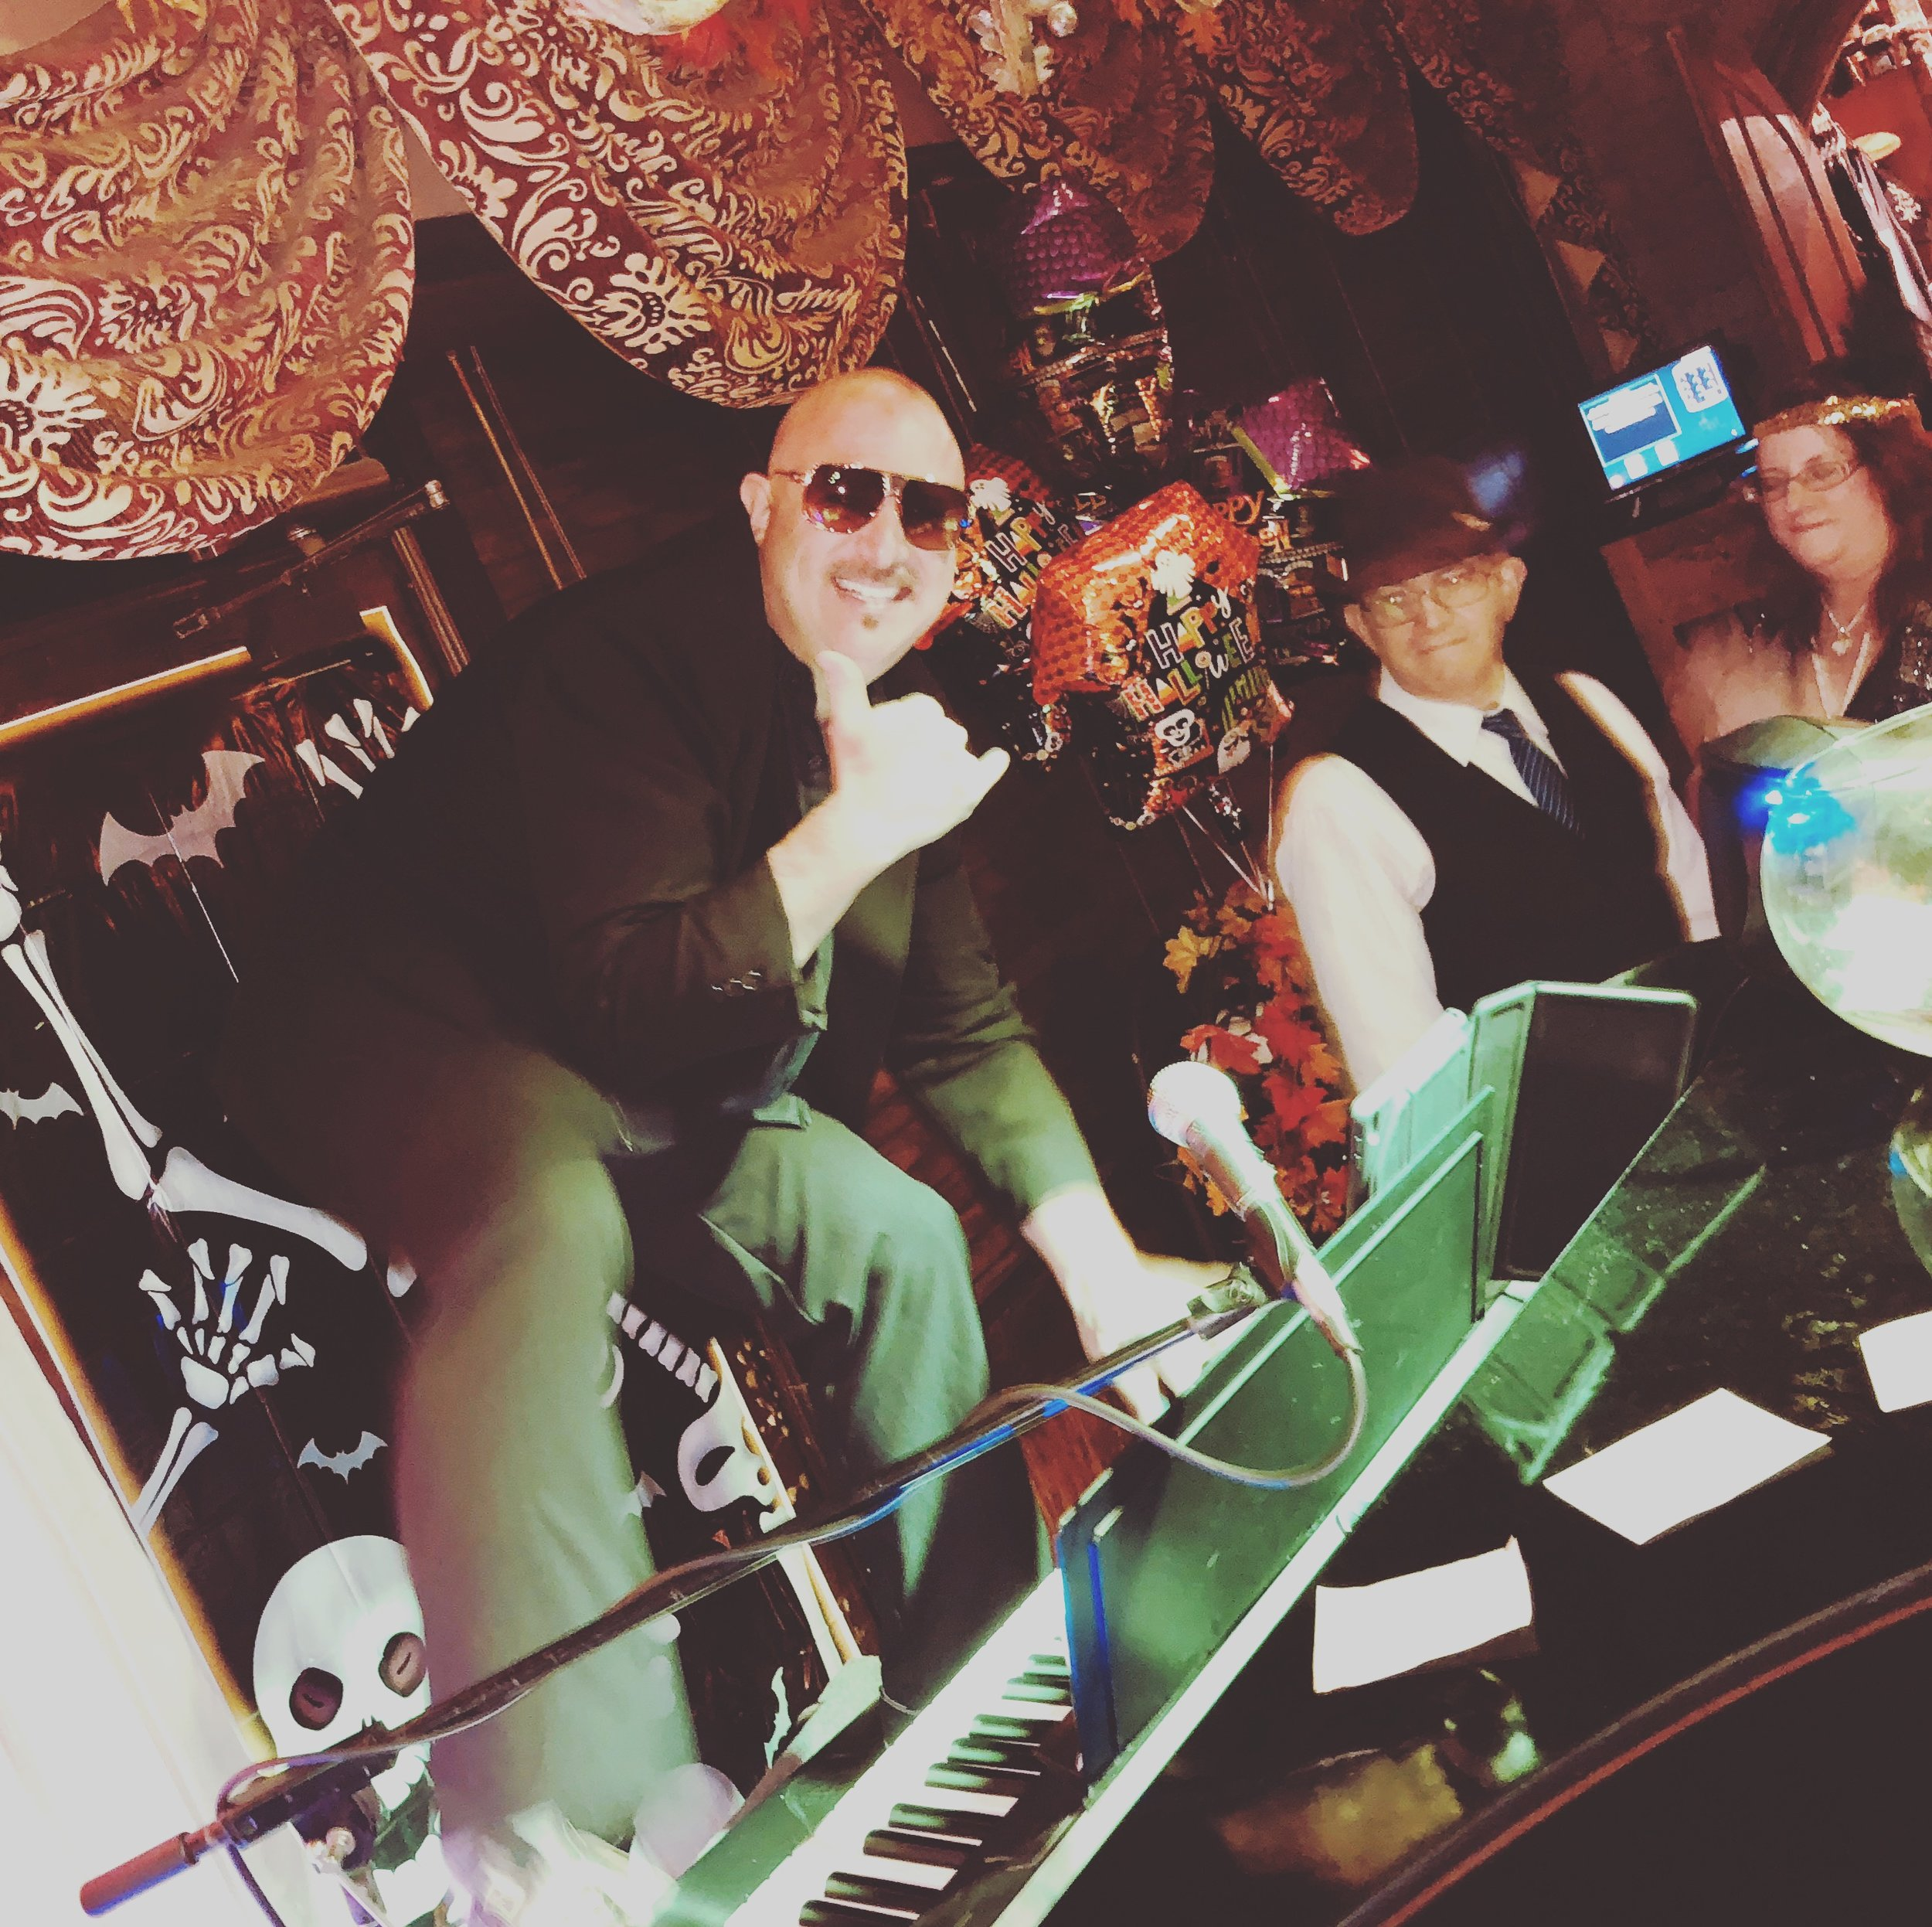 Dueling Pianos at Vincitorio's Restaurant and Wine Bar Tempe, AZ- Billy as Pitbull, Halloween, 2018